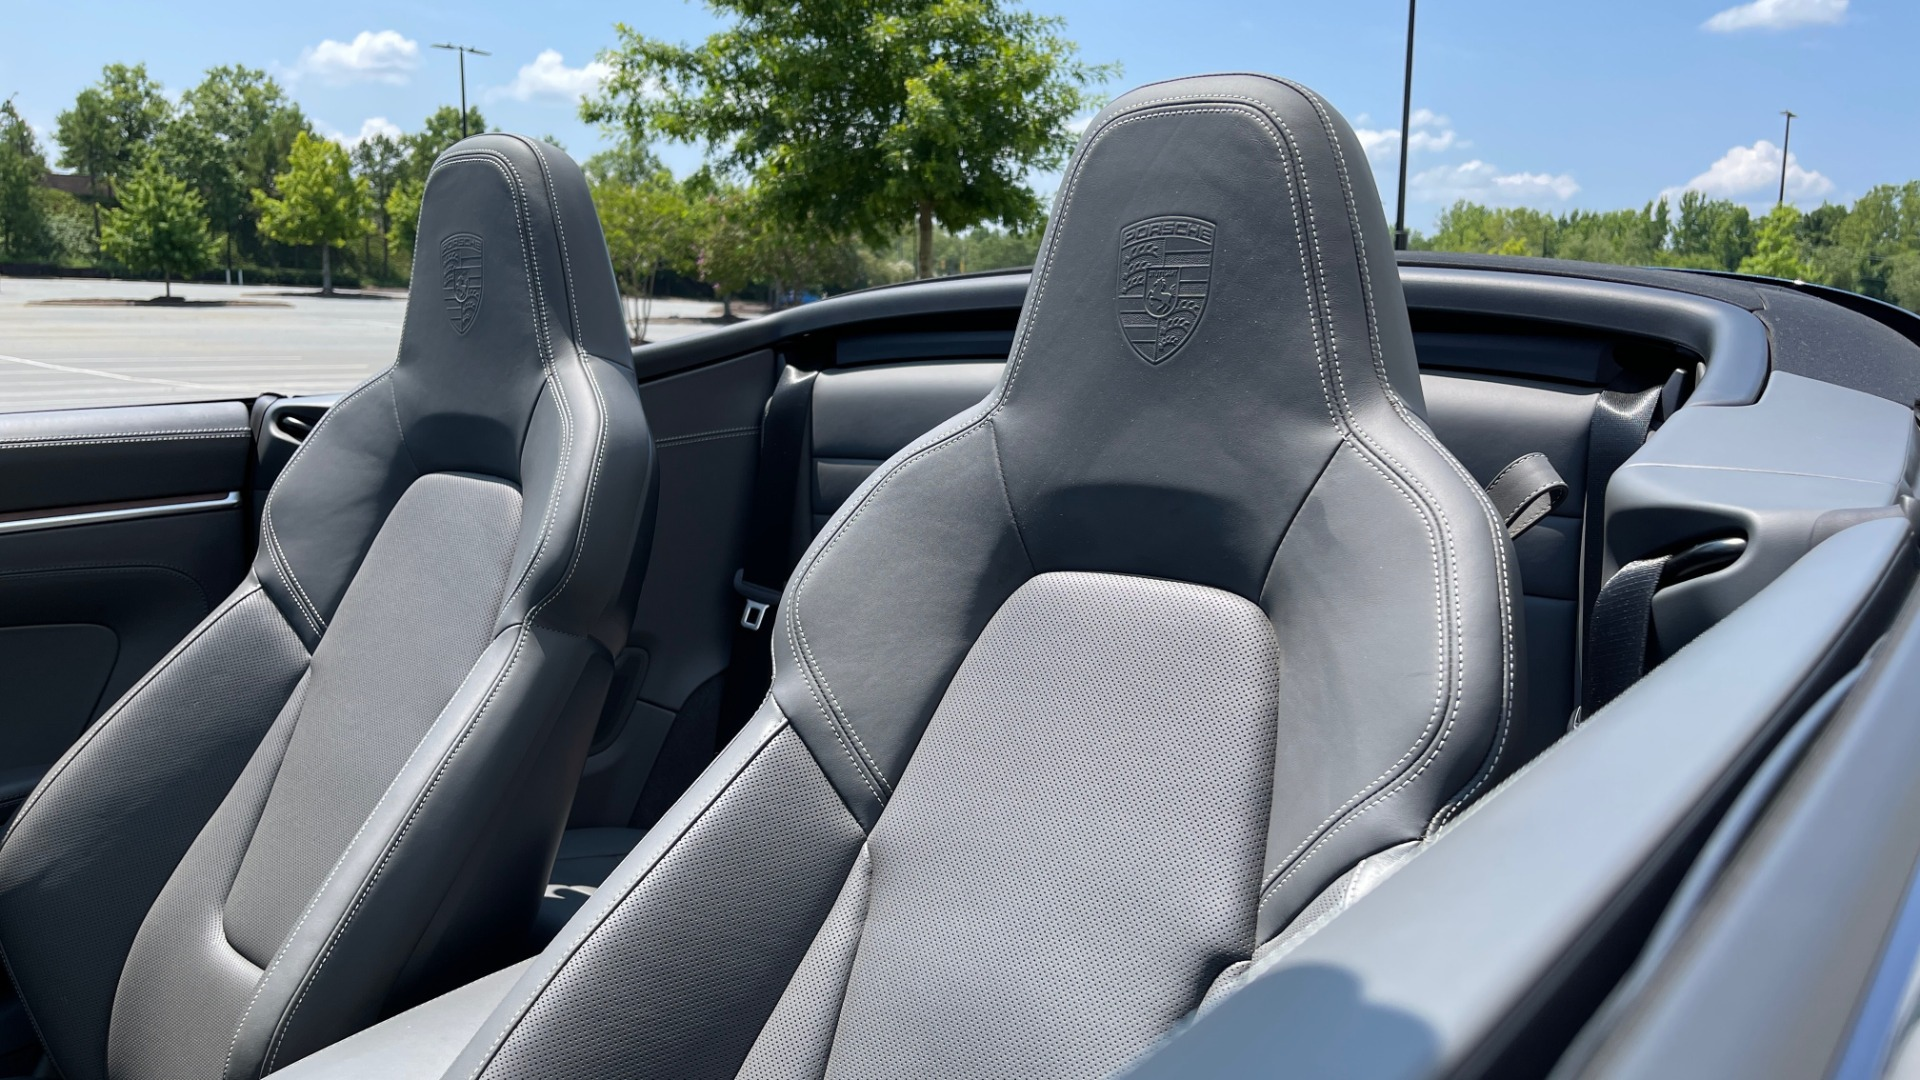 Used 2020 Porsche 911 CARRERA S CABRIOLET PREMIUM SPORT / LCA / ACC / BOSE / REARVIEW for sale $159,995 at Formula Imports in Charlotte NC 28227 84